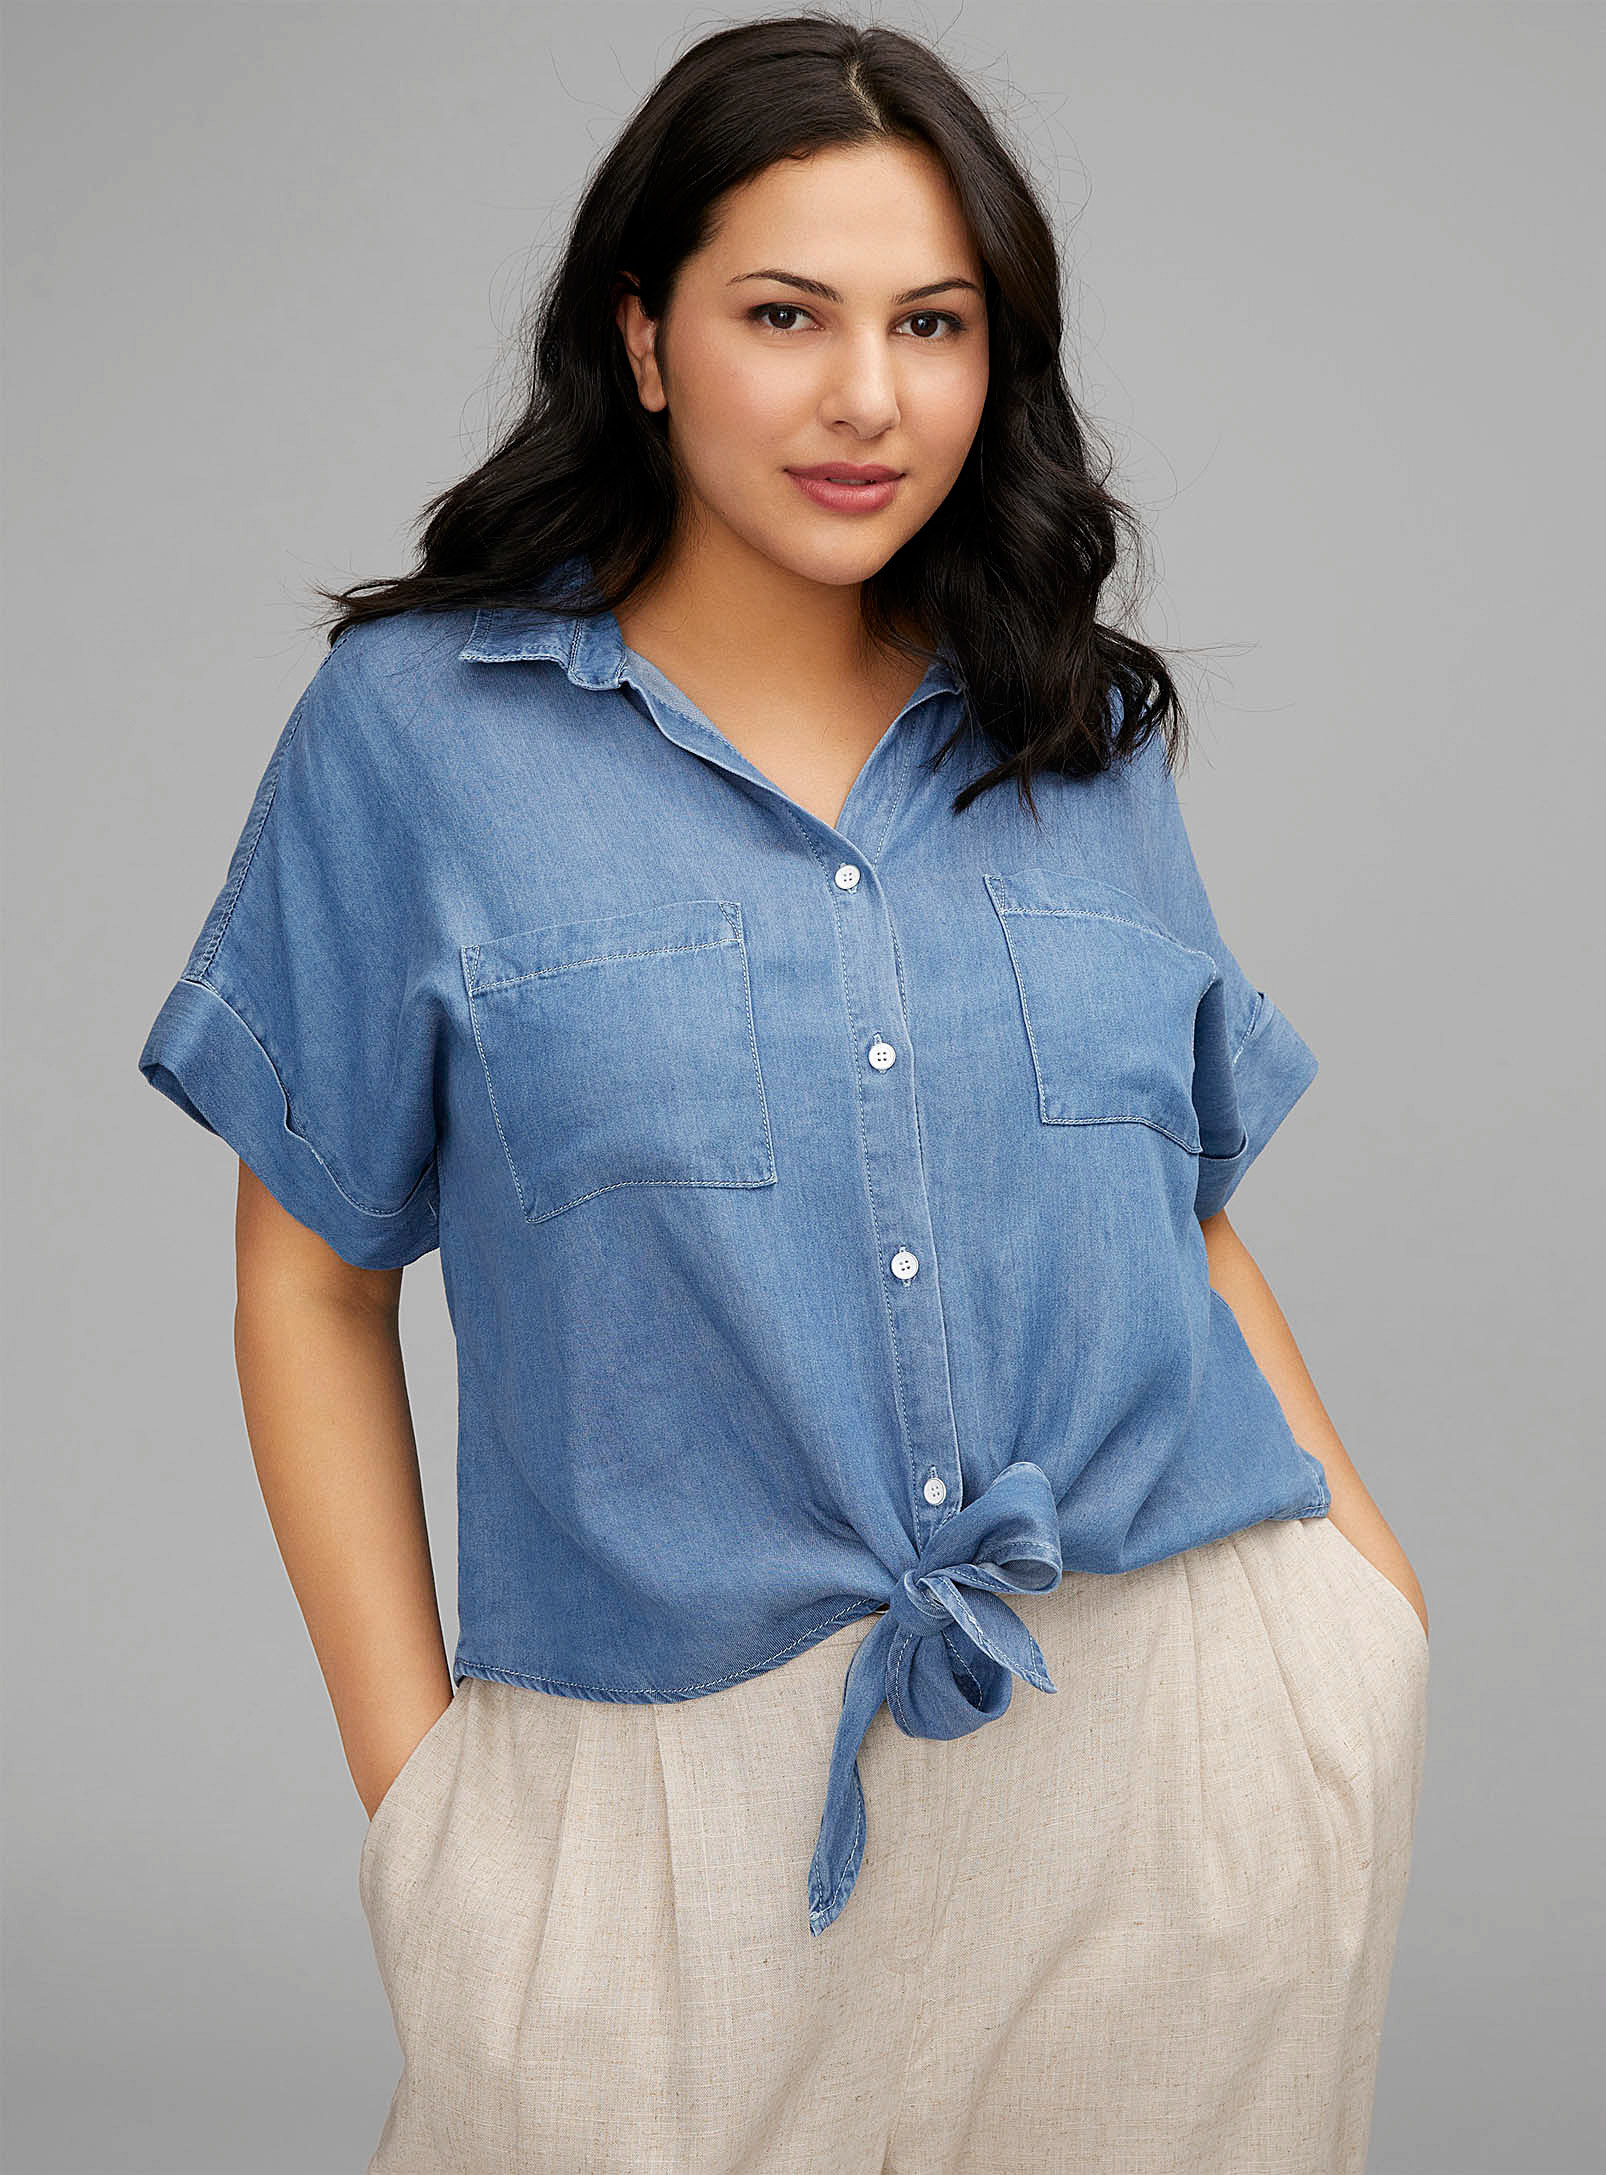 a person wearing the tie-up denim t-shirt with linen pants